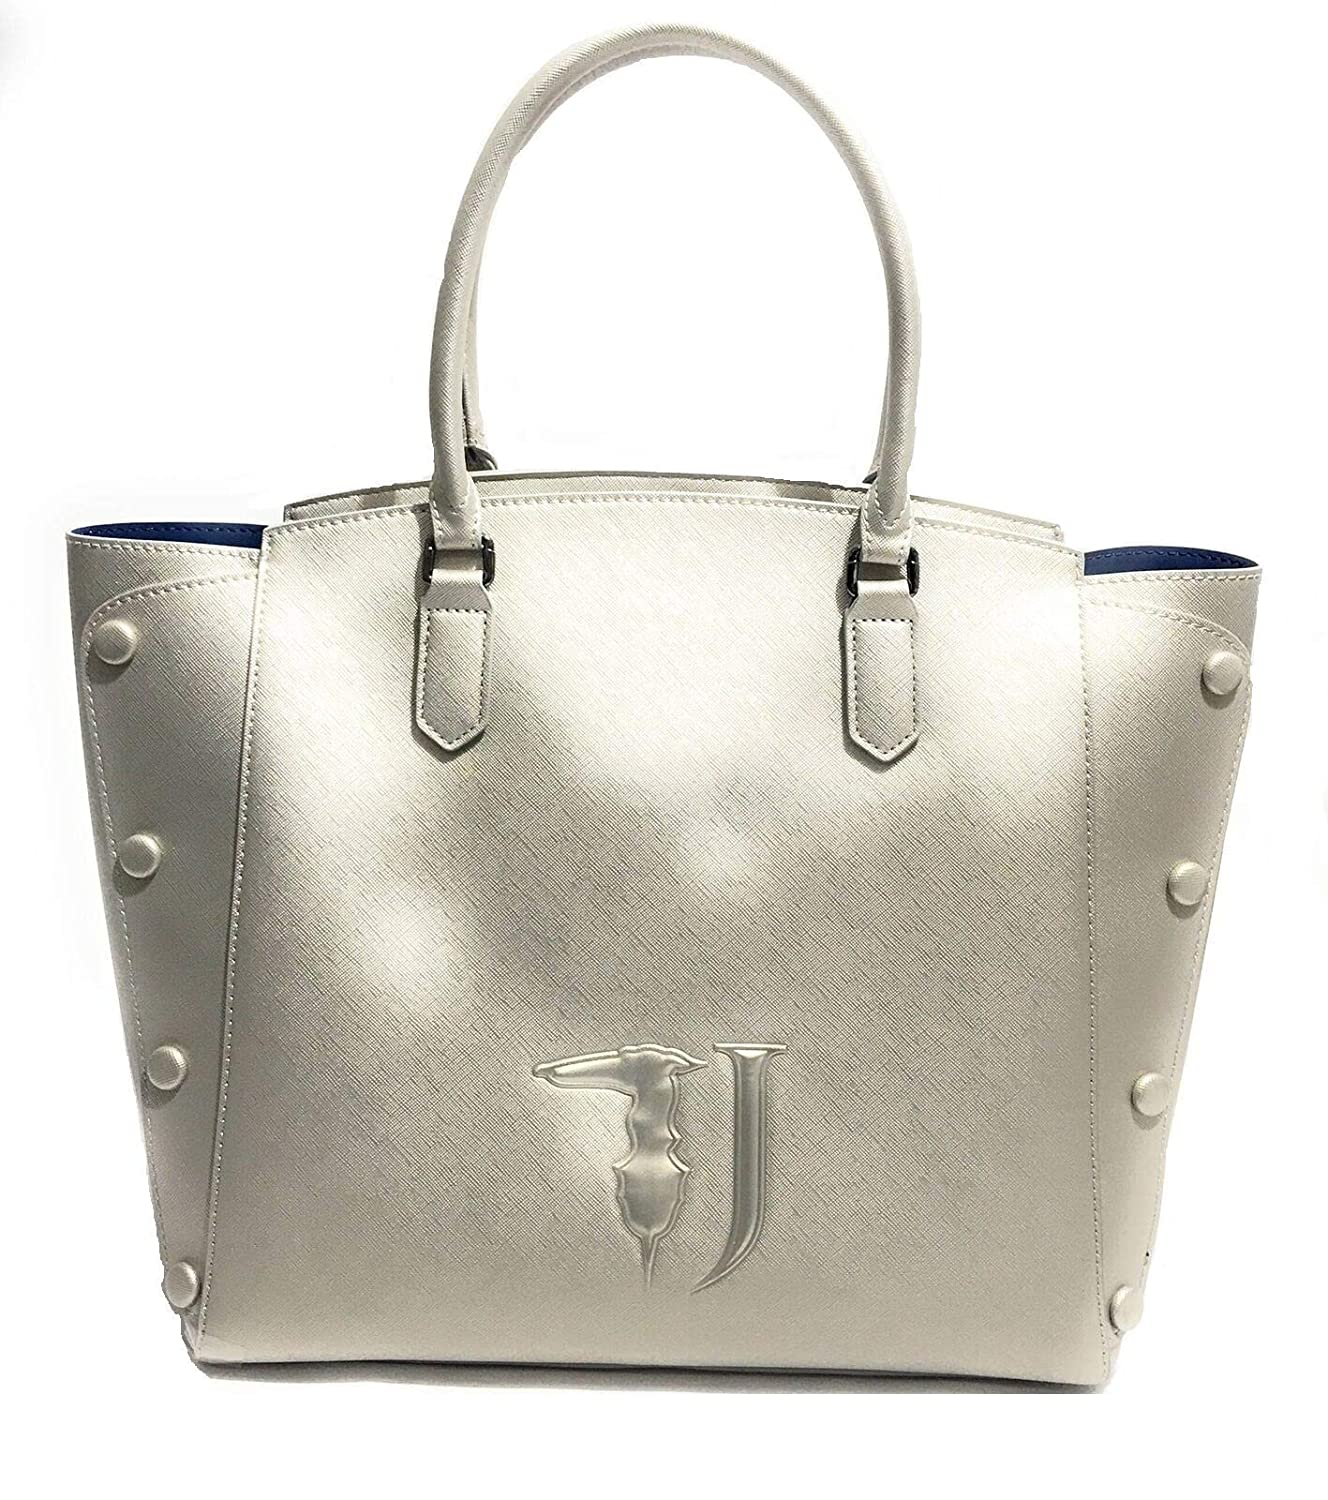 TRUSSARDI MELISSA SHOPPING BAG 75B00452